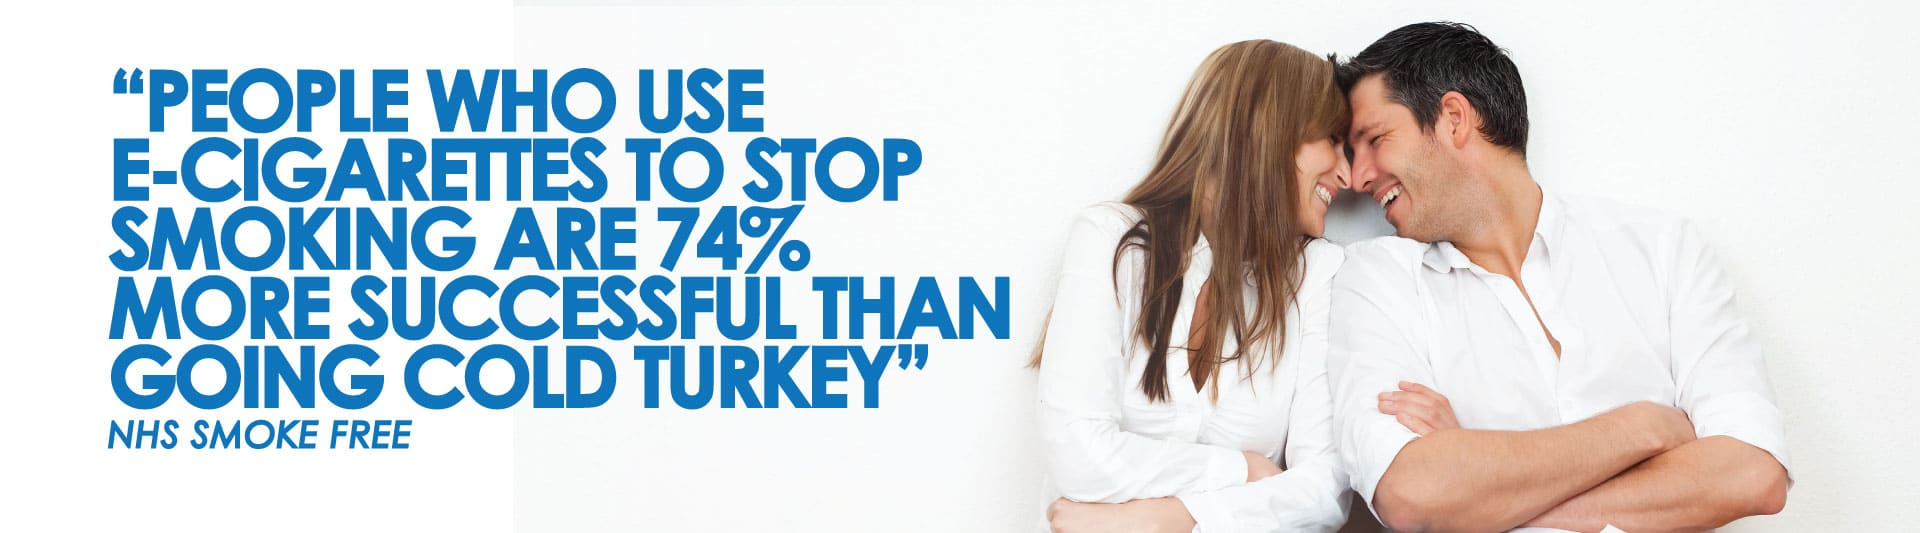 Sie NHS Stop Smoking Service found that adult smokers who quit smoking using an e-cigarette are 74% more successful than going cold turkey